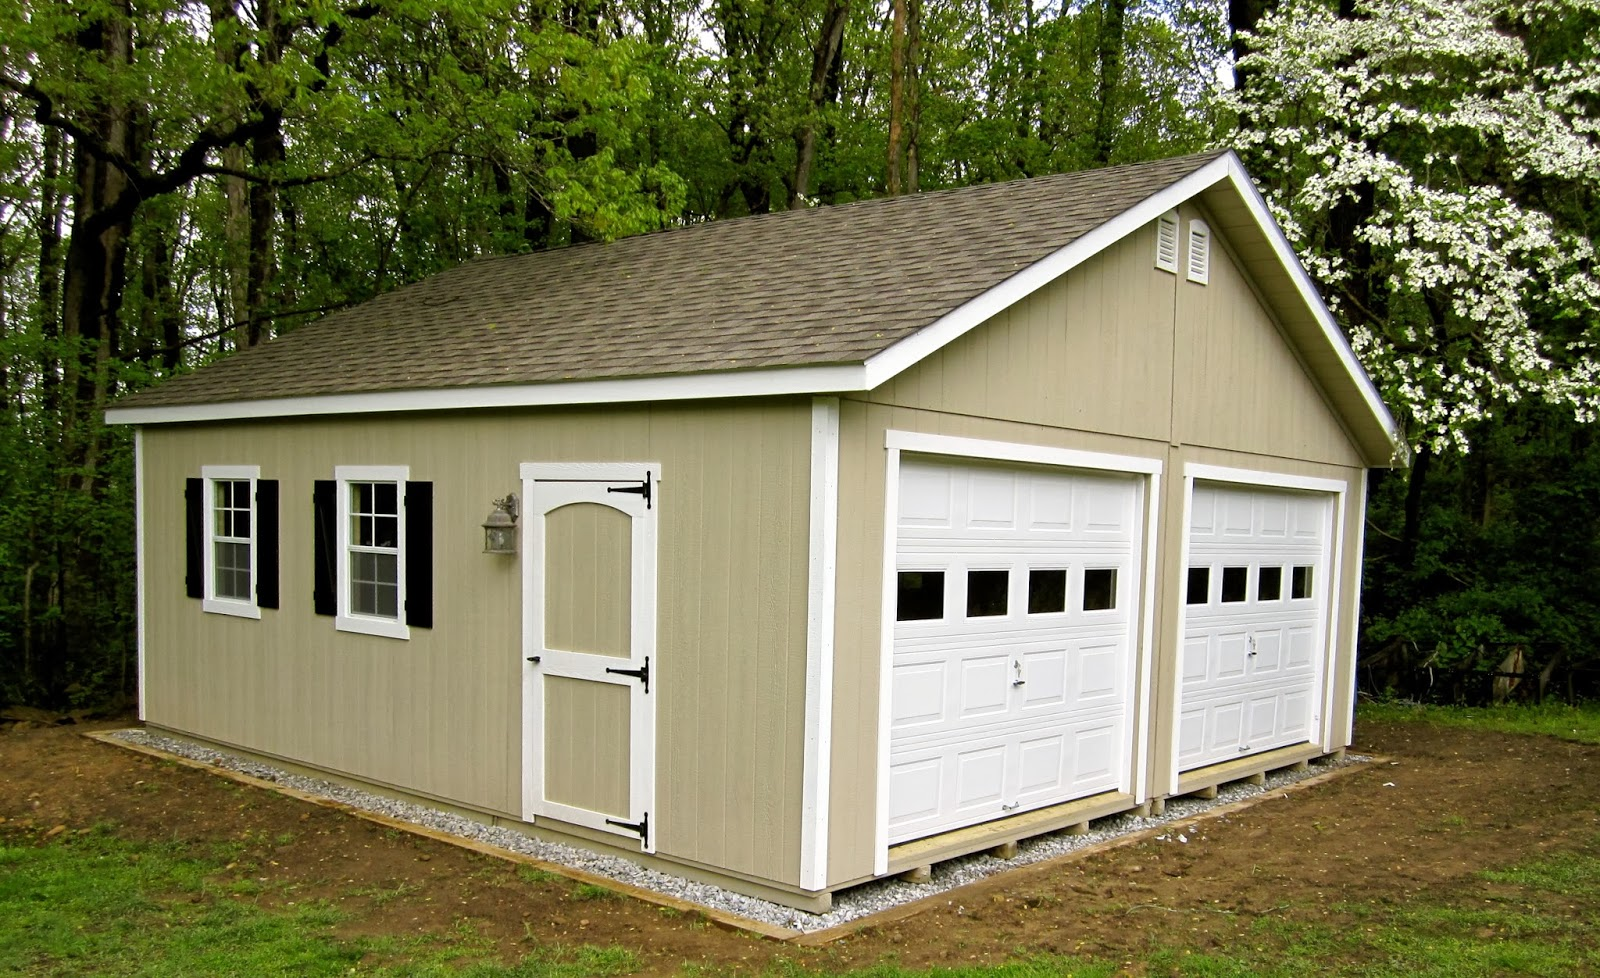 Waterloo structures storage sheds double wide garages for Garage roof styles